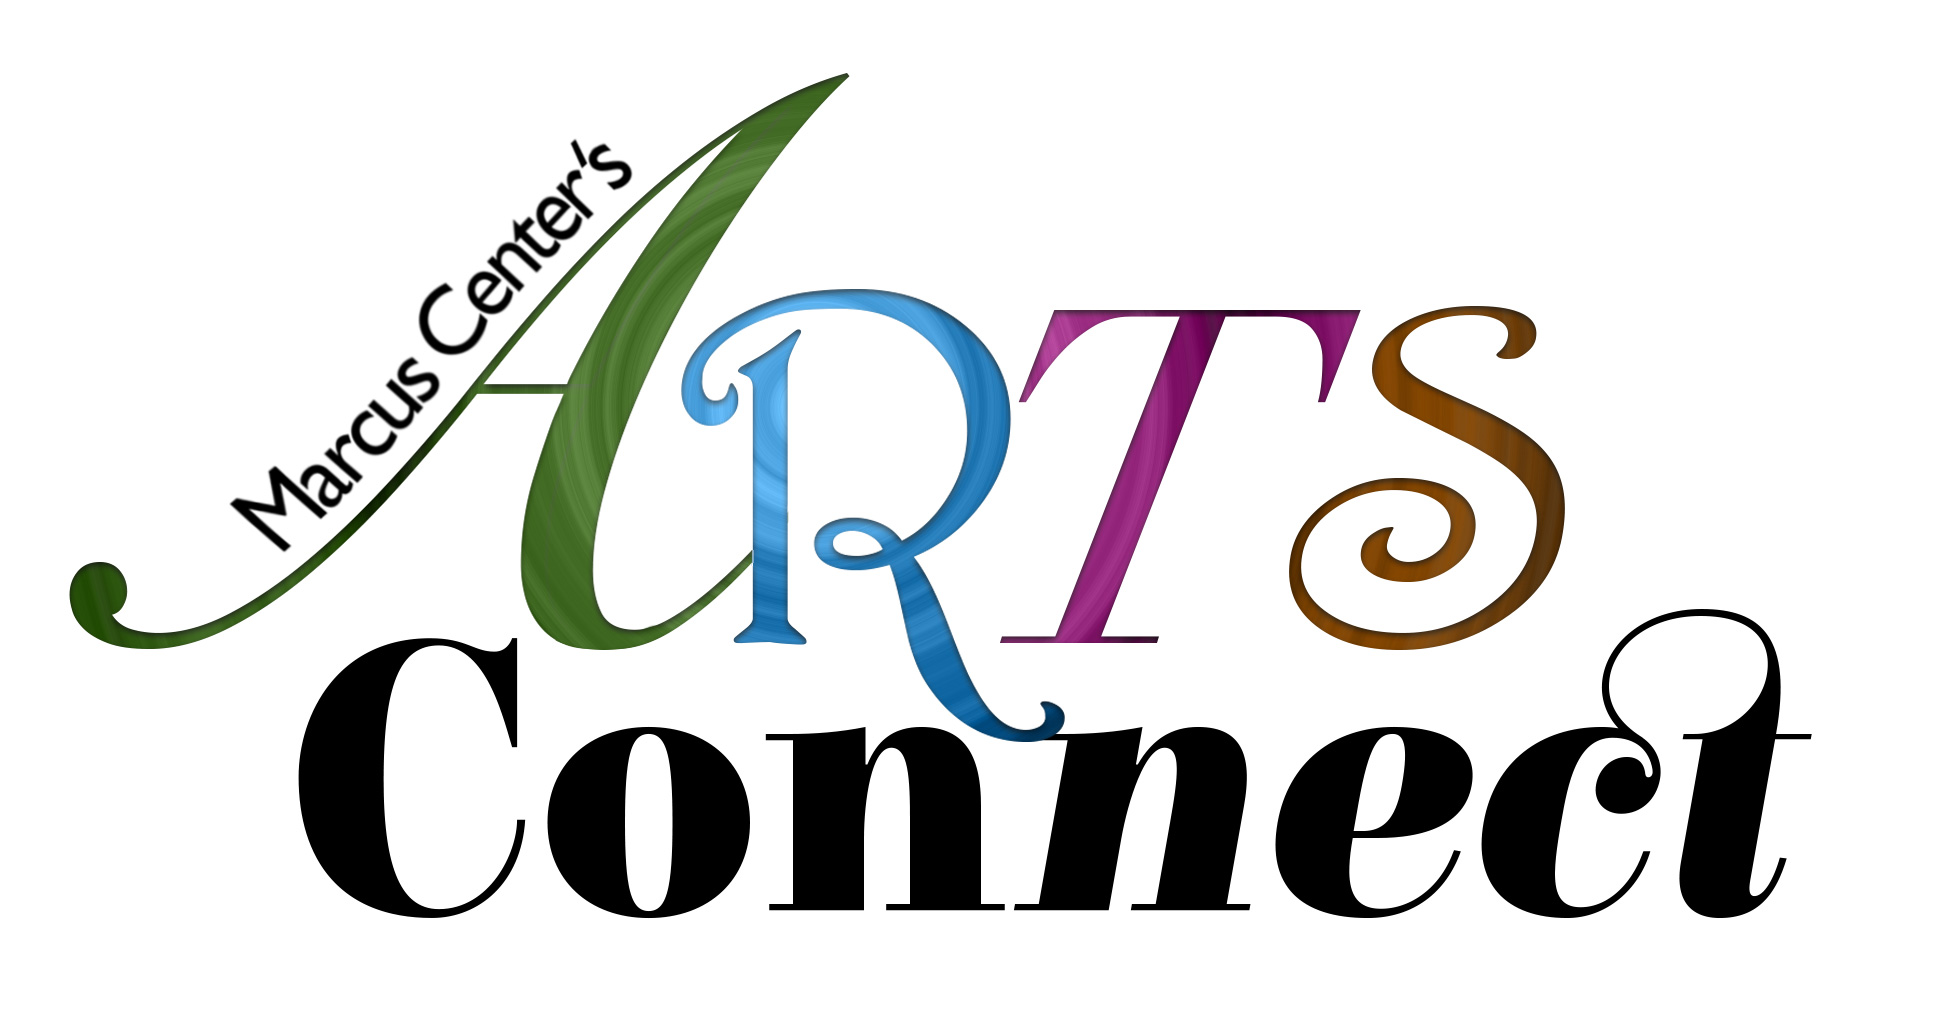 Marcus Center Continues Arts Connect Summer Camp on July 22-26